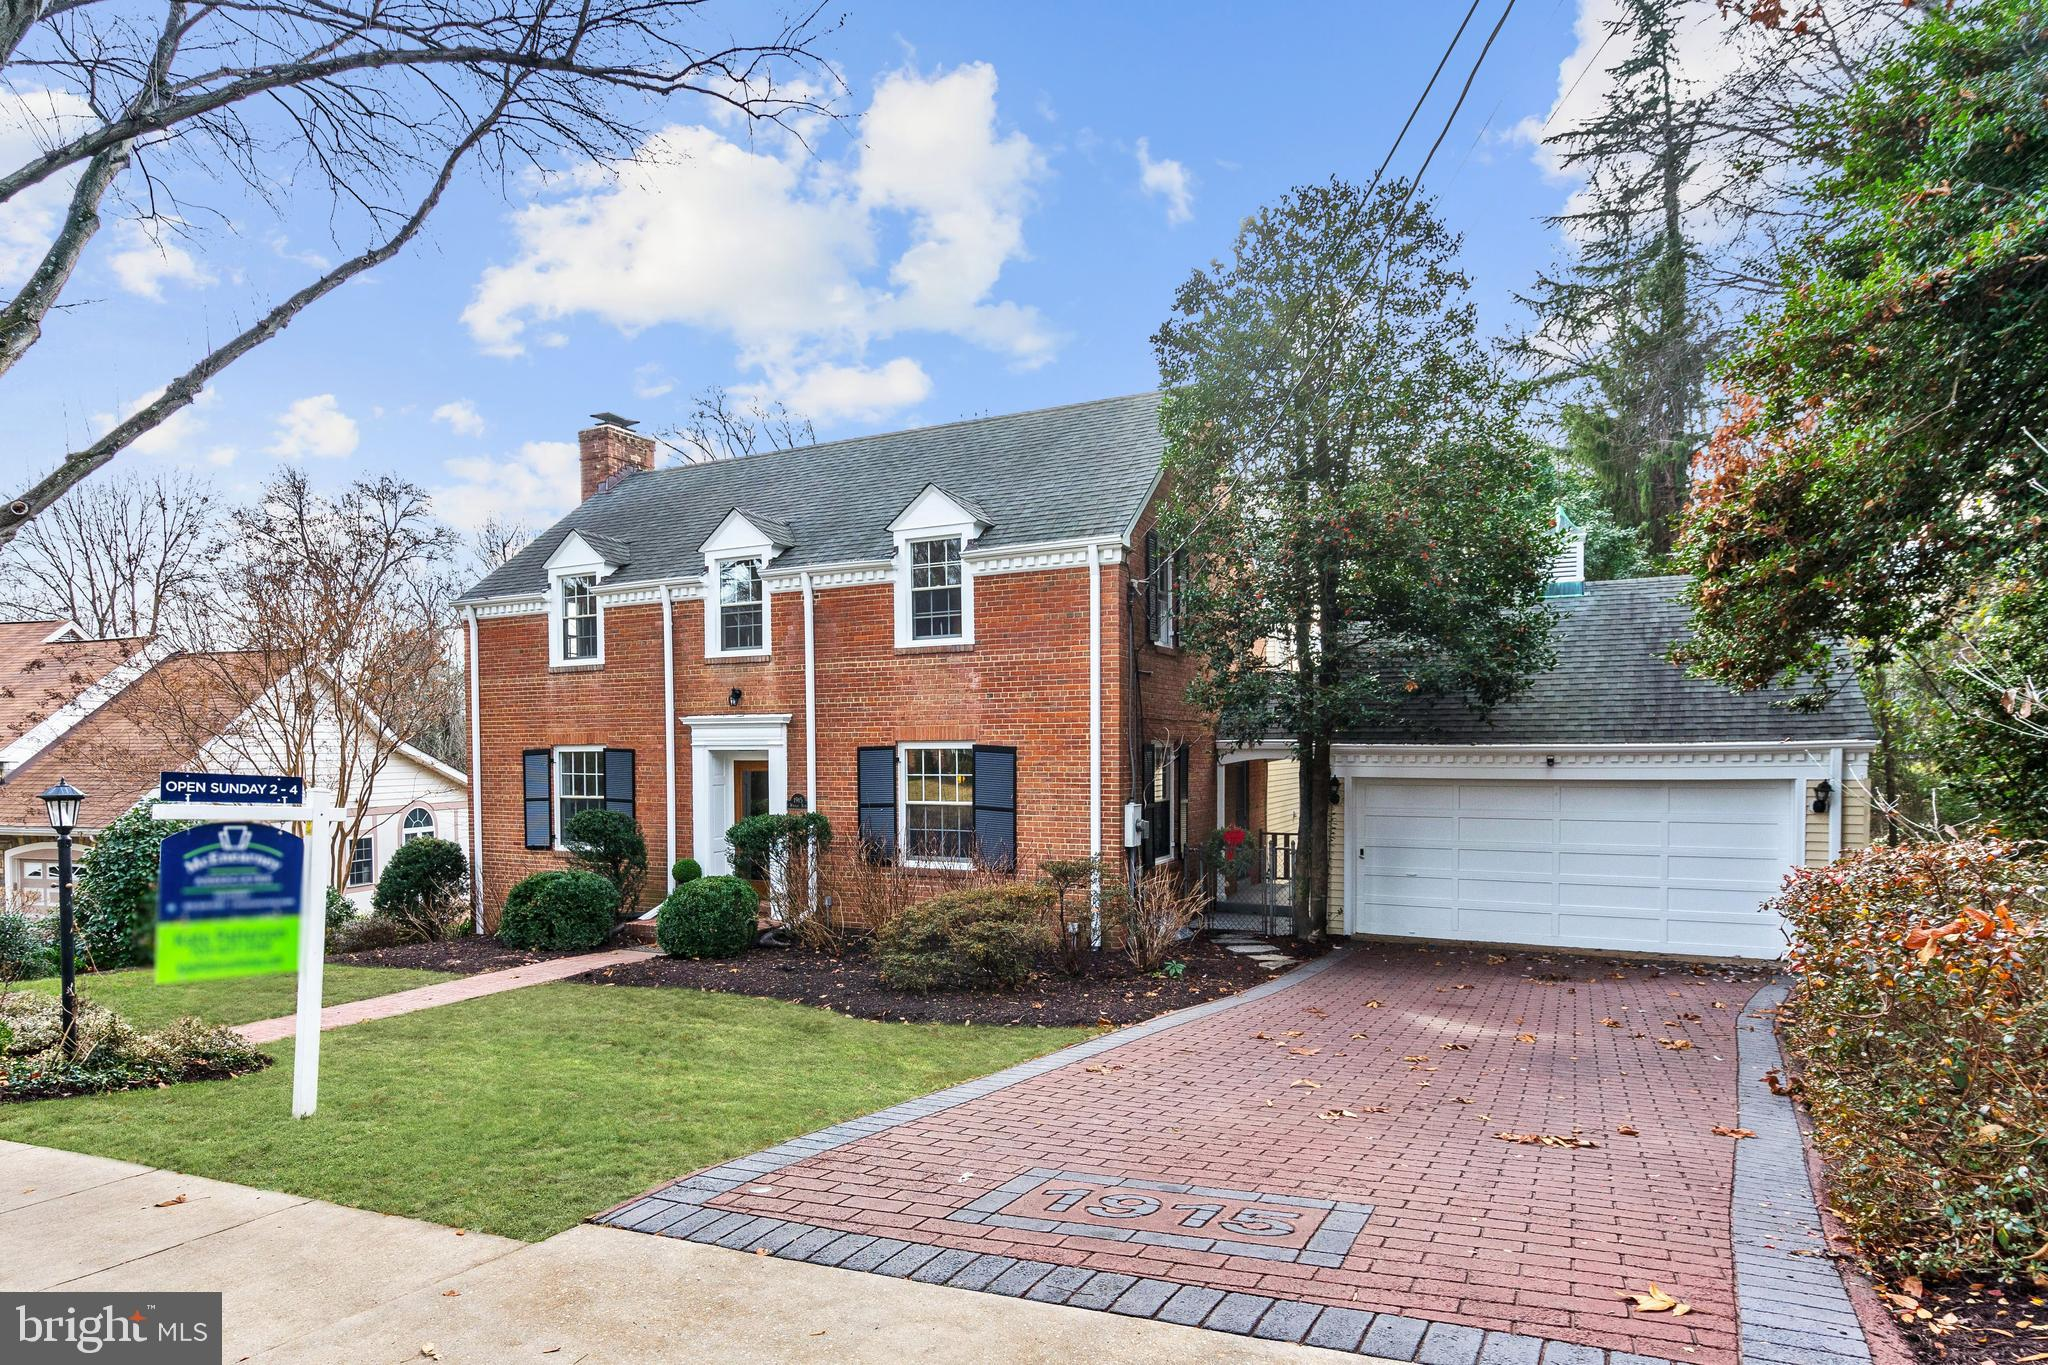 1915 WINDSOR ROAD, ALEXANDRIA, VA 22307